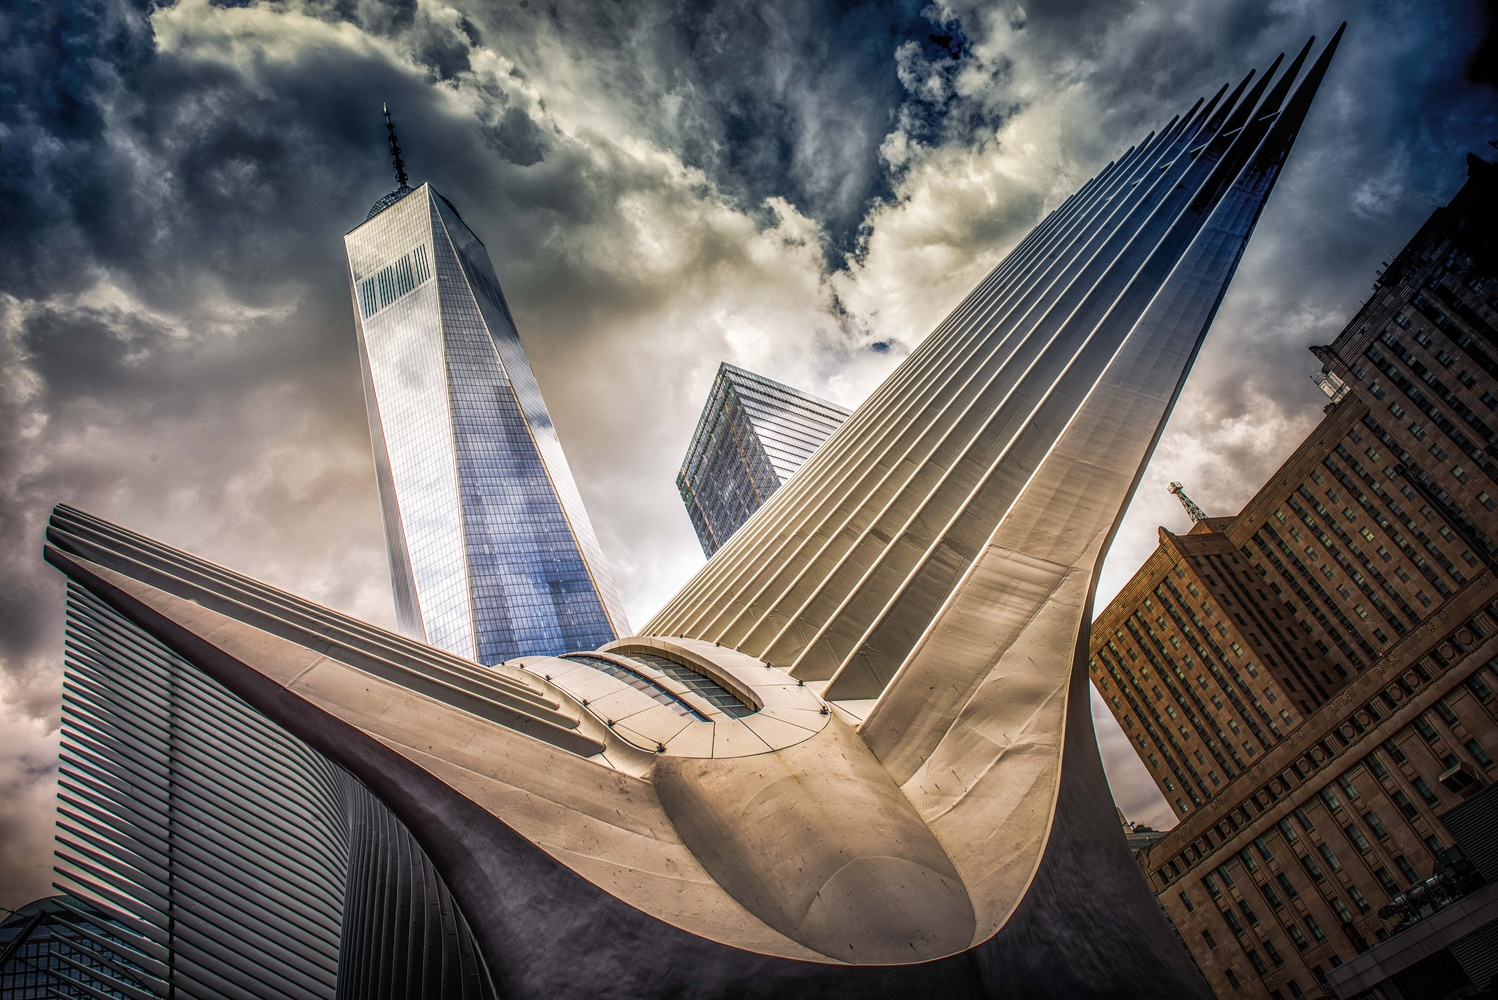 Oculus by Mark Peavy